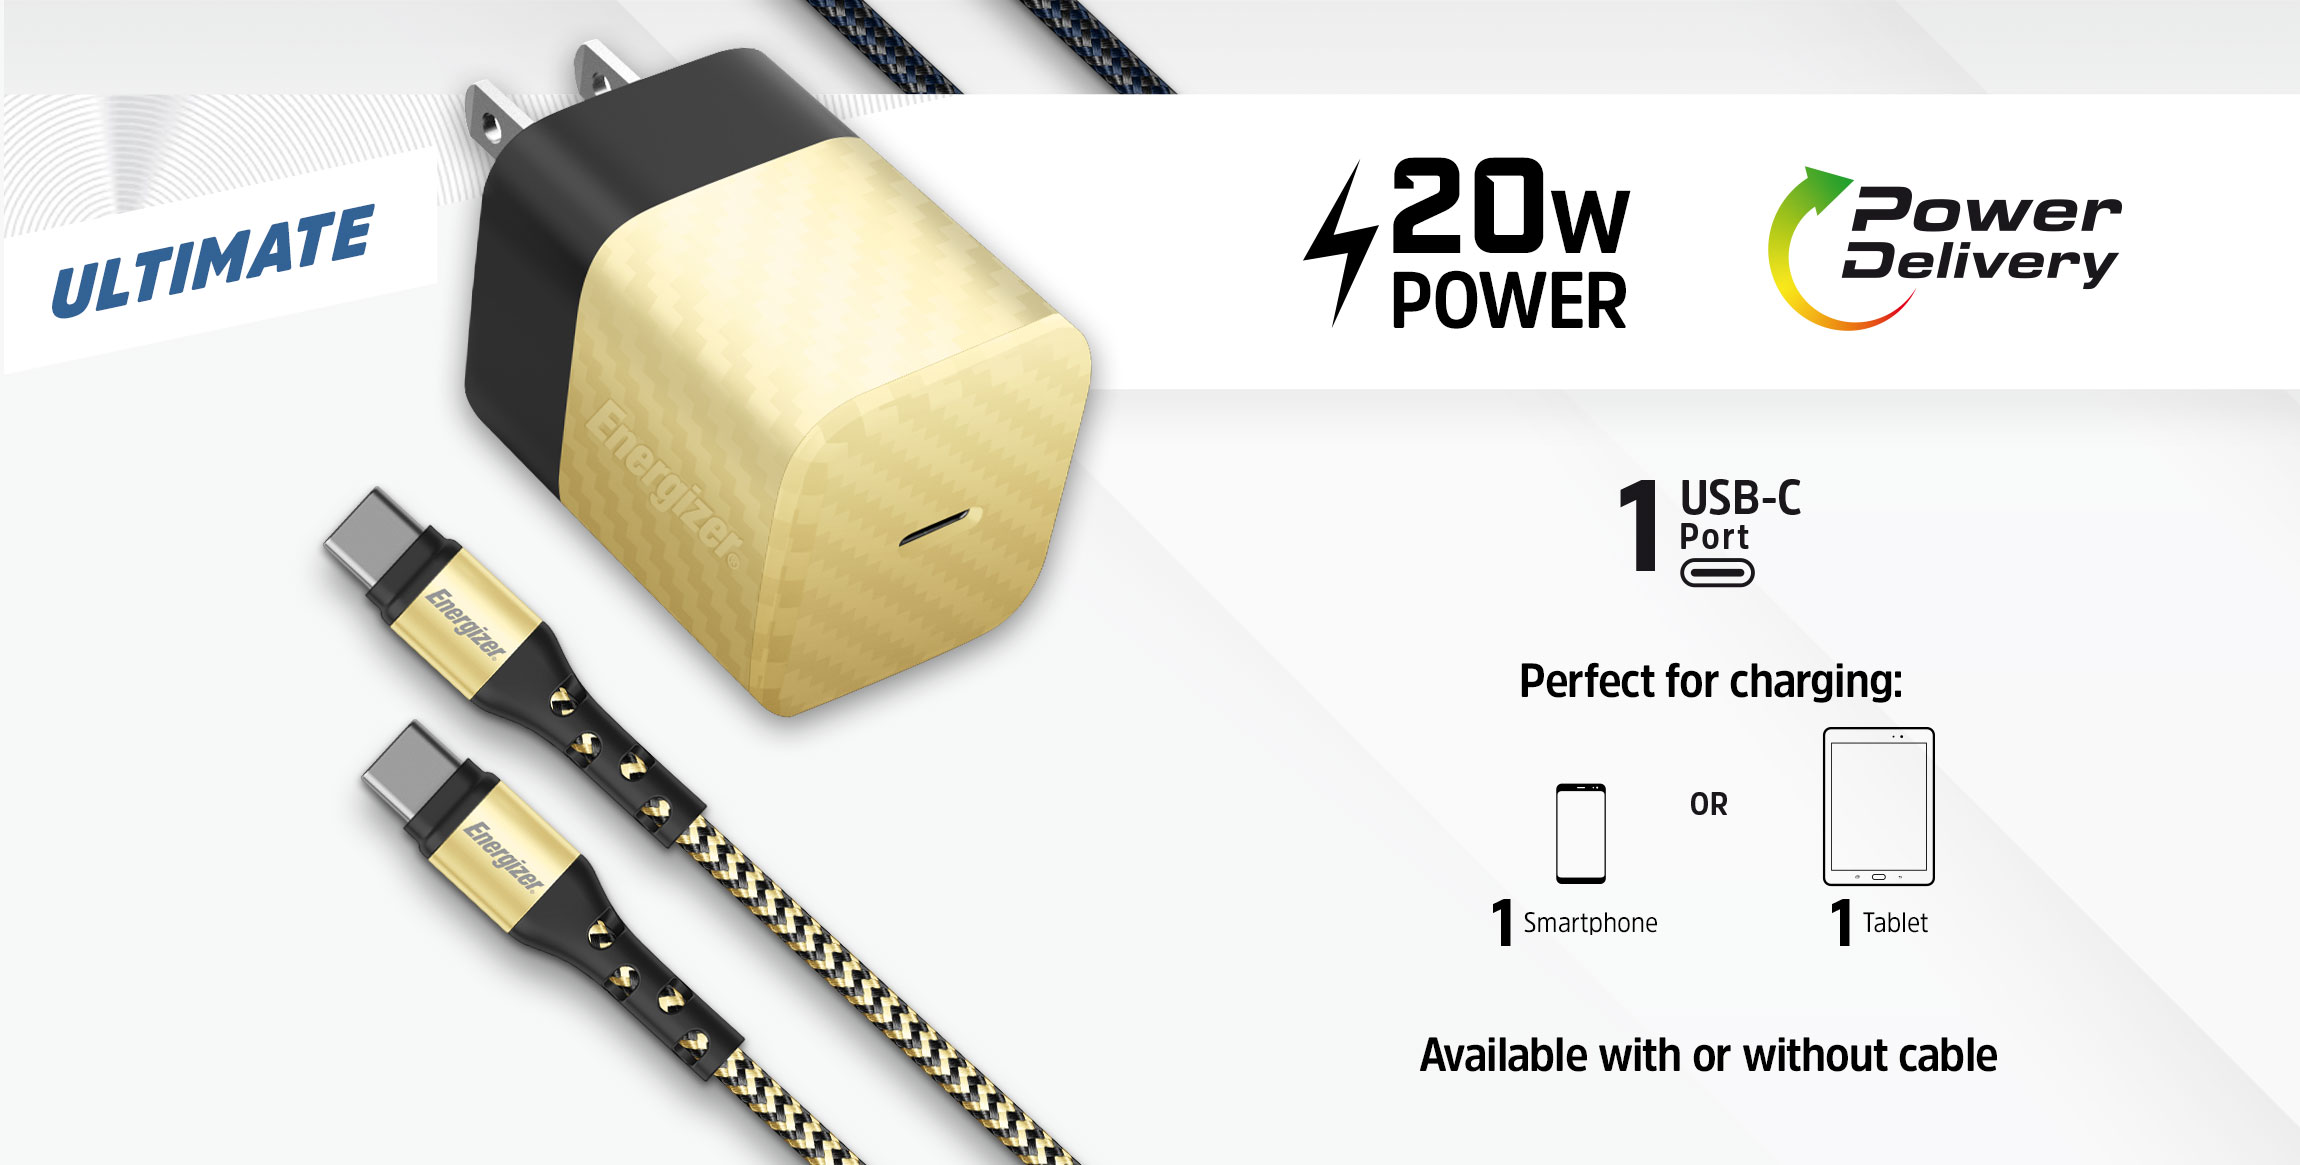 AT-wall-chargers-PD-QC-20W.jpg